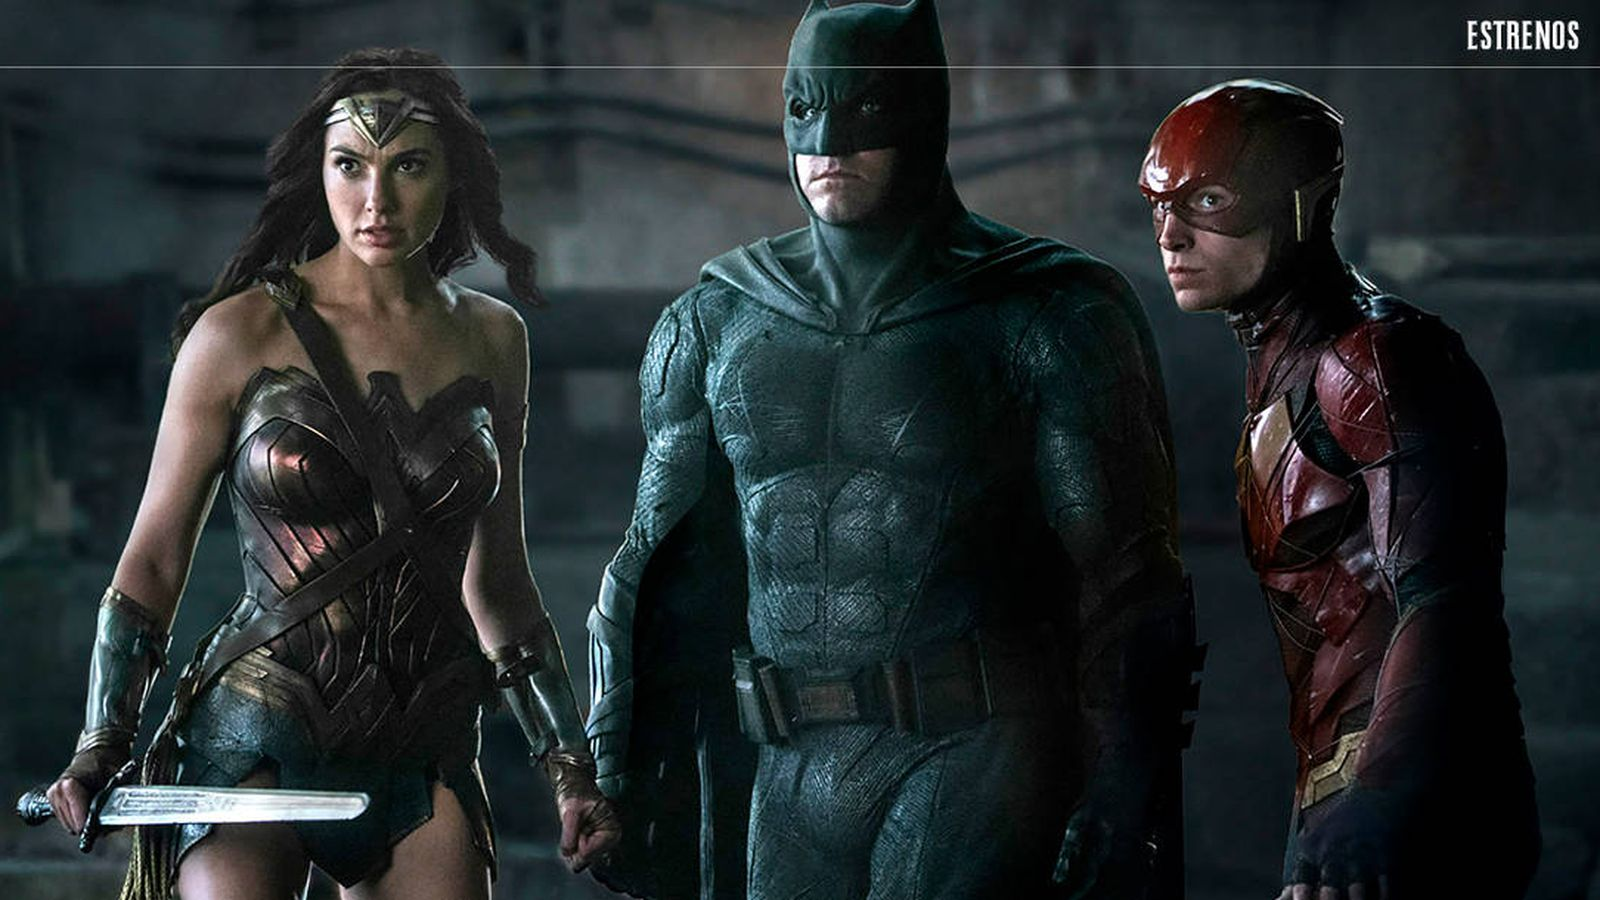 Foto: Wonder Woman, Batman y Flash, en una imagen de 'La liga de la justicia'. (Warner)